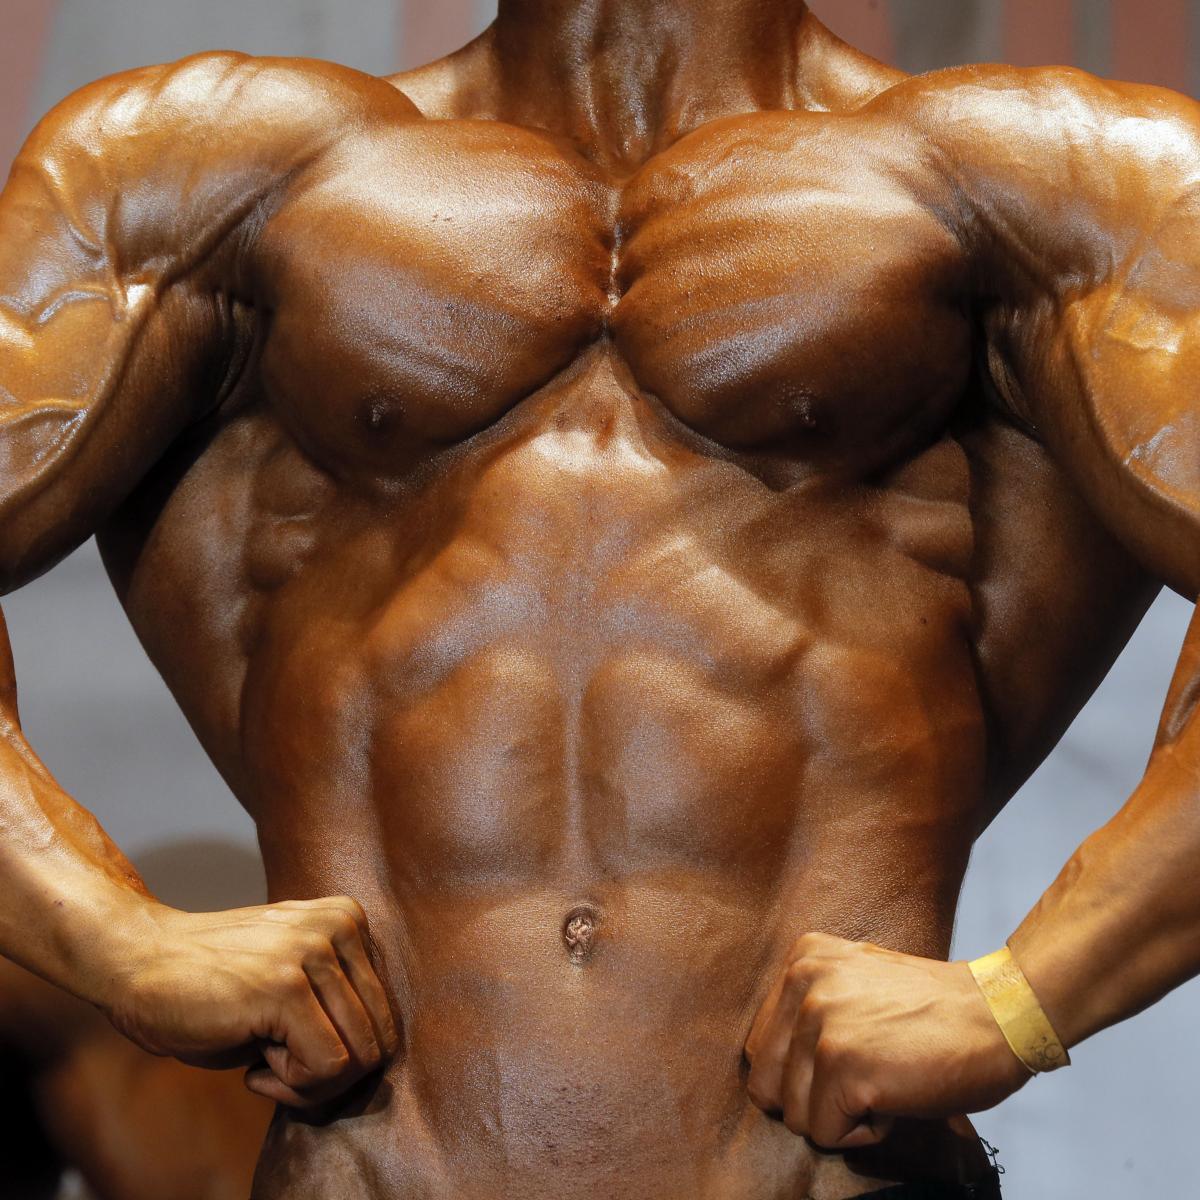 Mr Olympia 2020 Final Results Top Videos And Predictions For 2021 Event Bleacher Report Latest News Videos And Highlights